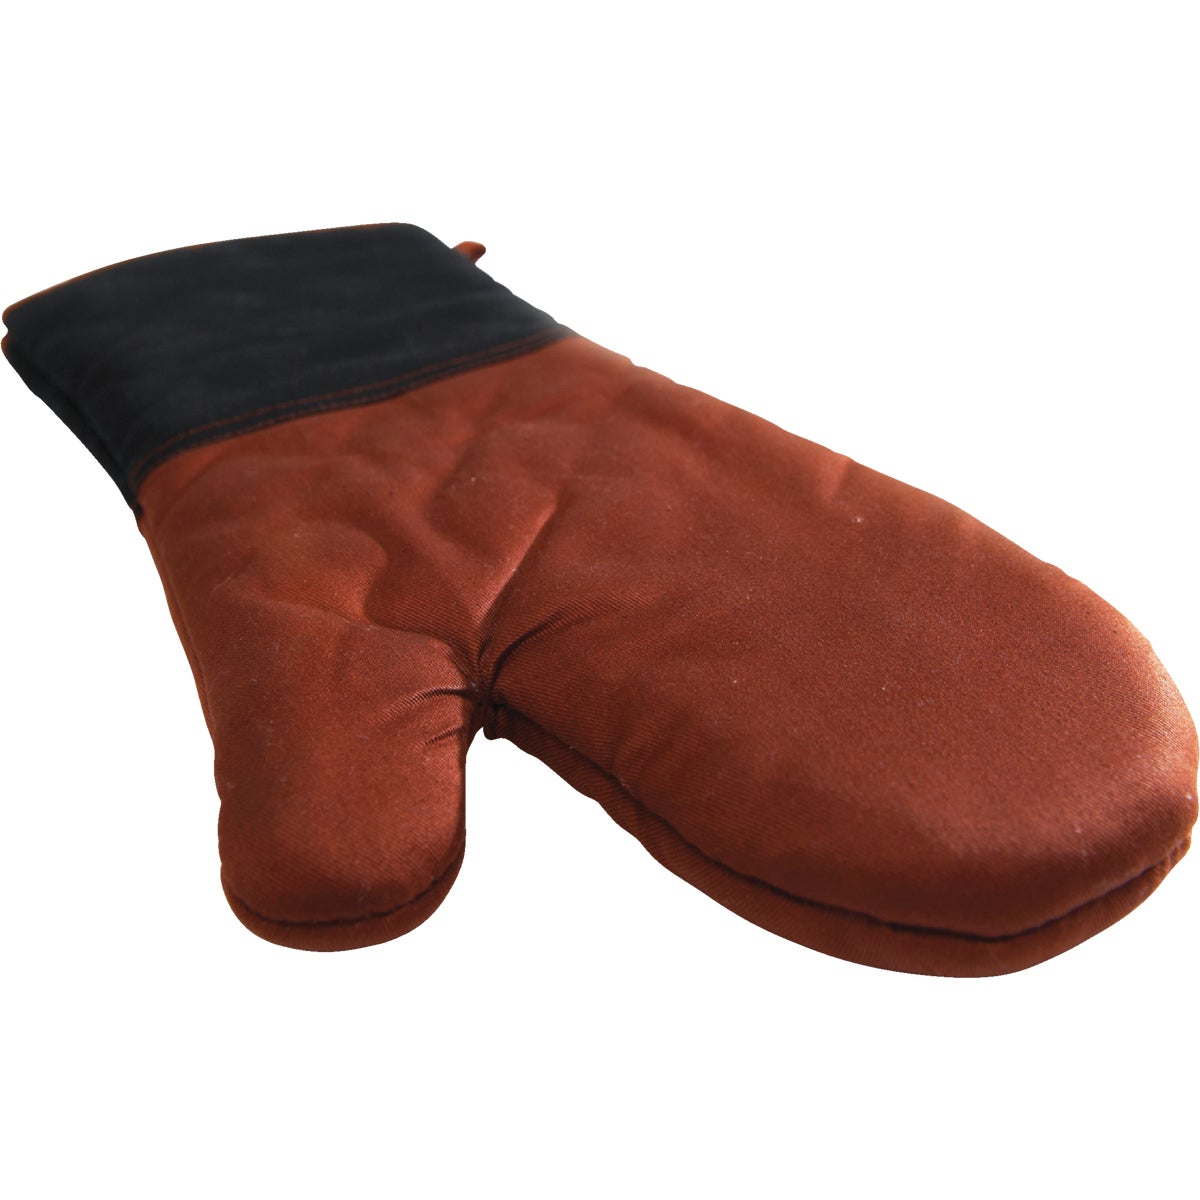 HEAVY DUTY GRILL MITT